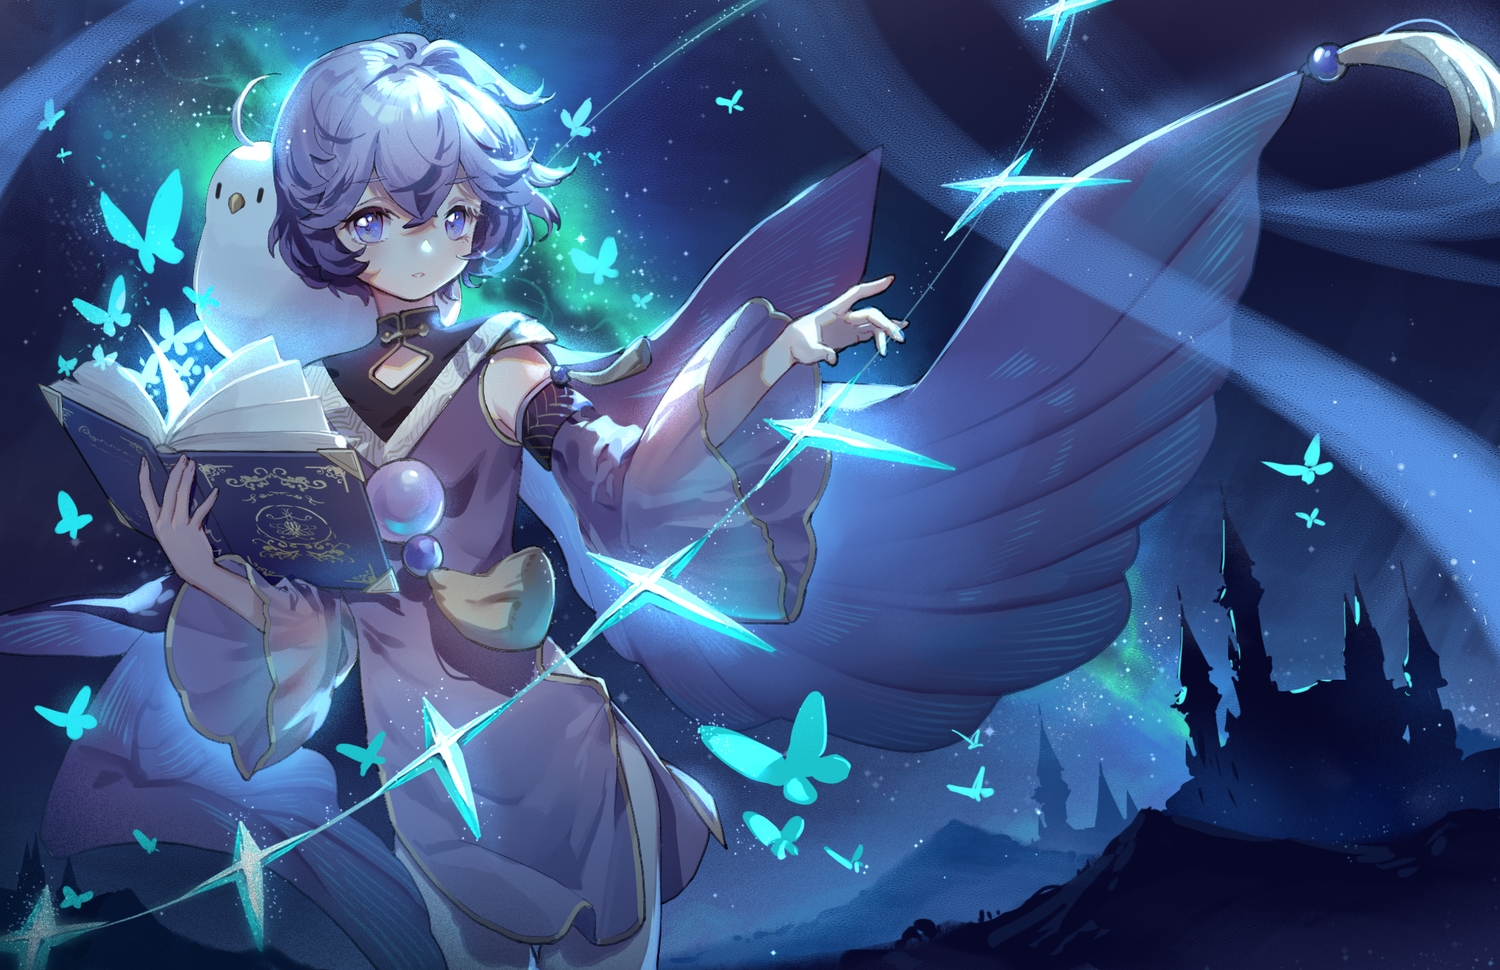 animal bird blue blue_eyes blue_hair book building dress mage magic night original short_hair silhouette sky wings yuzhi